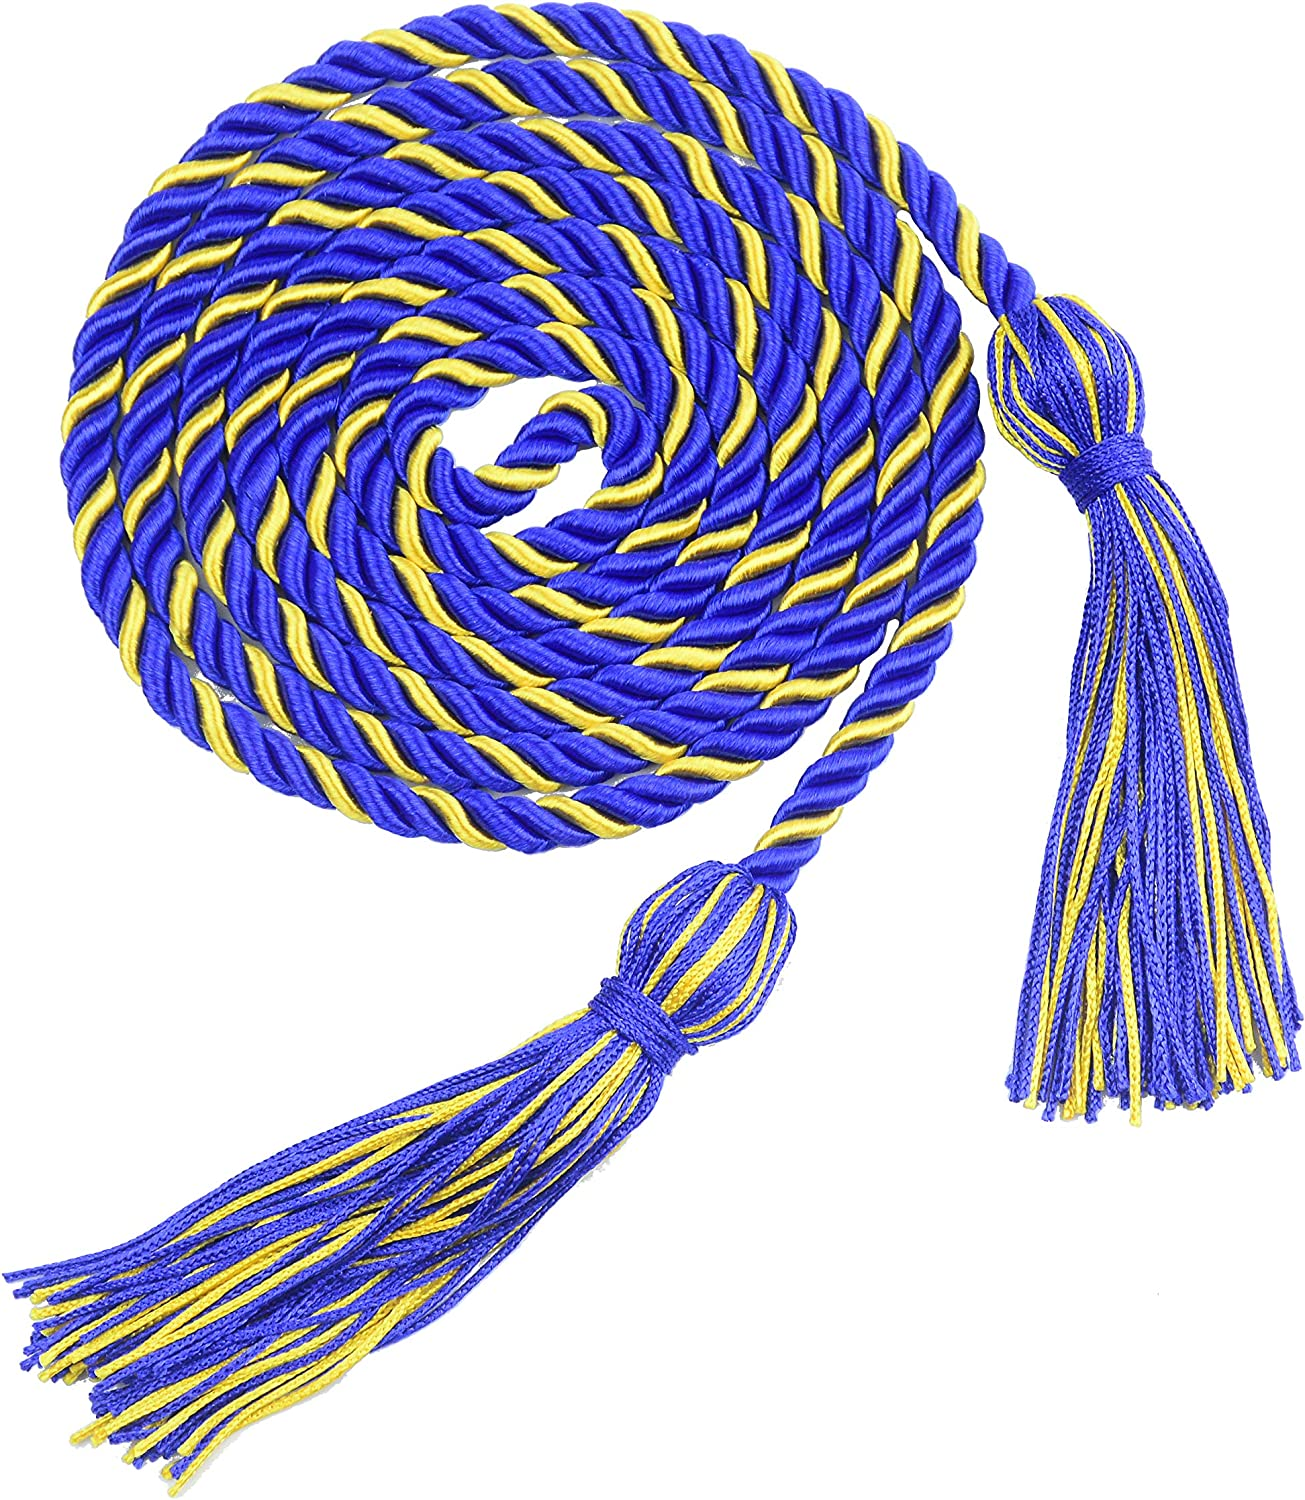 Navy Blue/&White Aokbean 2pcs 67 inches Graduation Honor Cord Tassels with Double Cord for Bachelor Graduation Students Home Decor